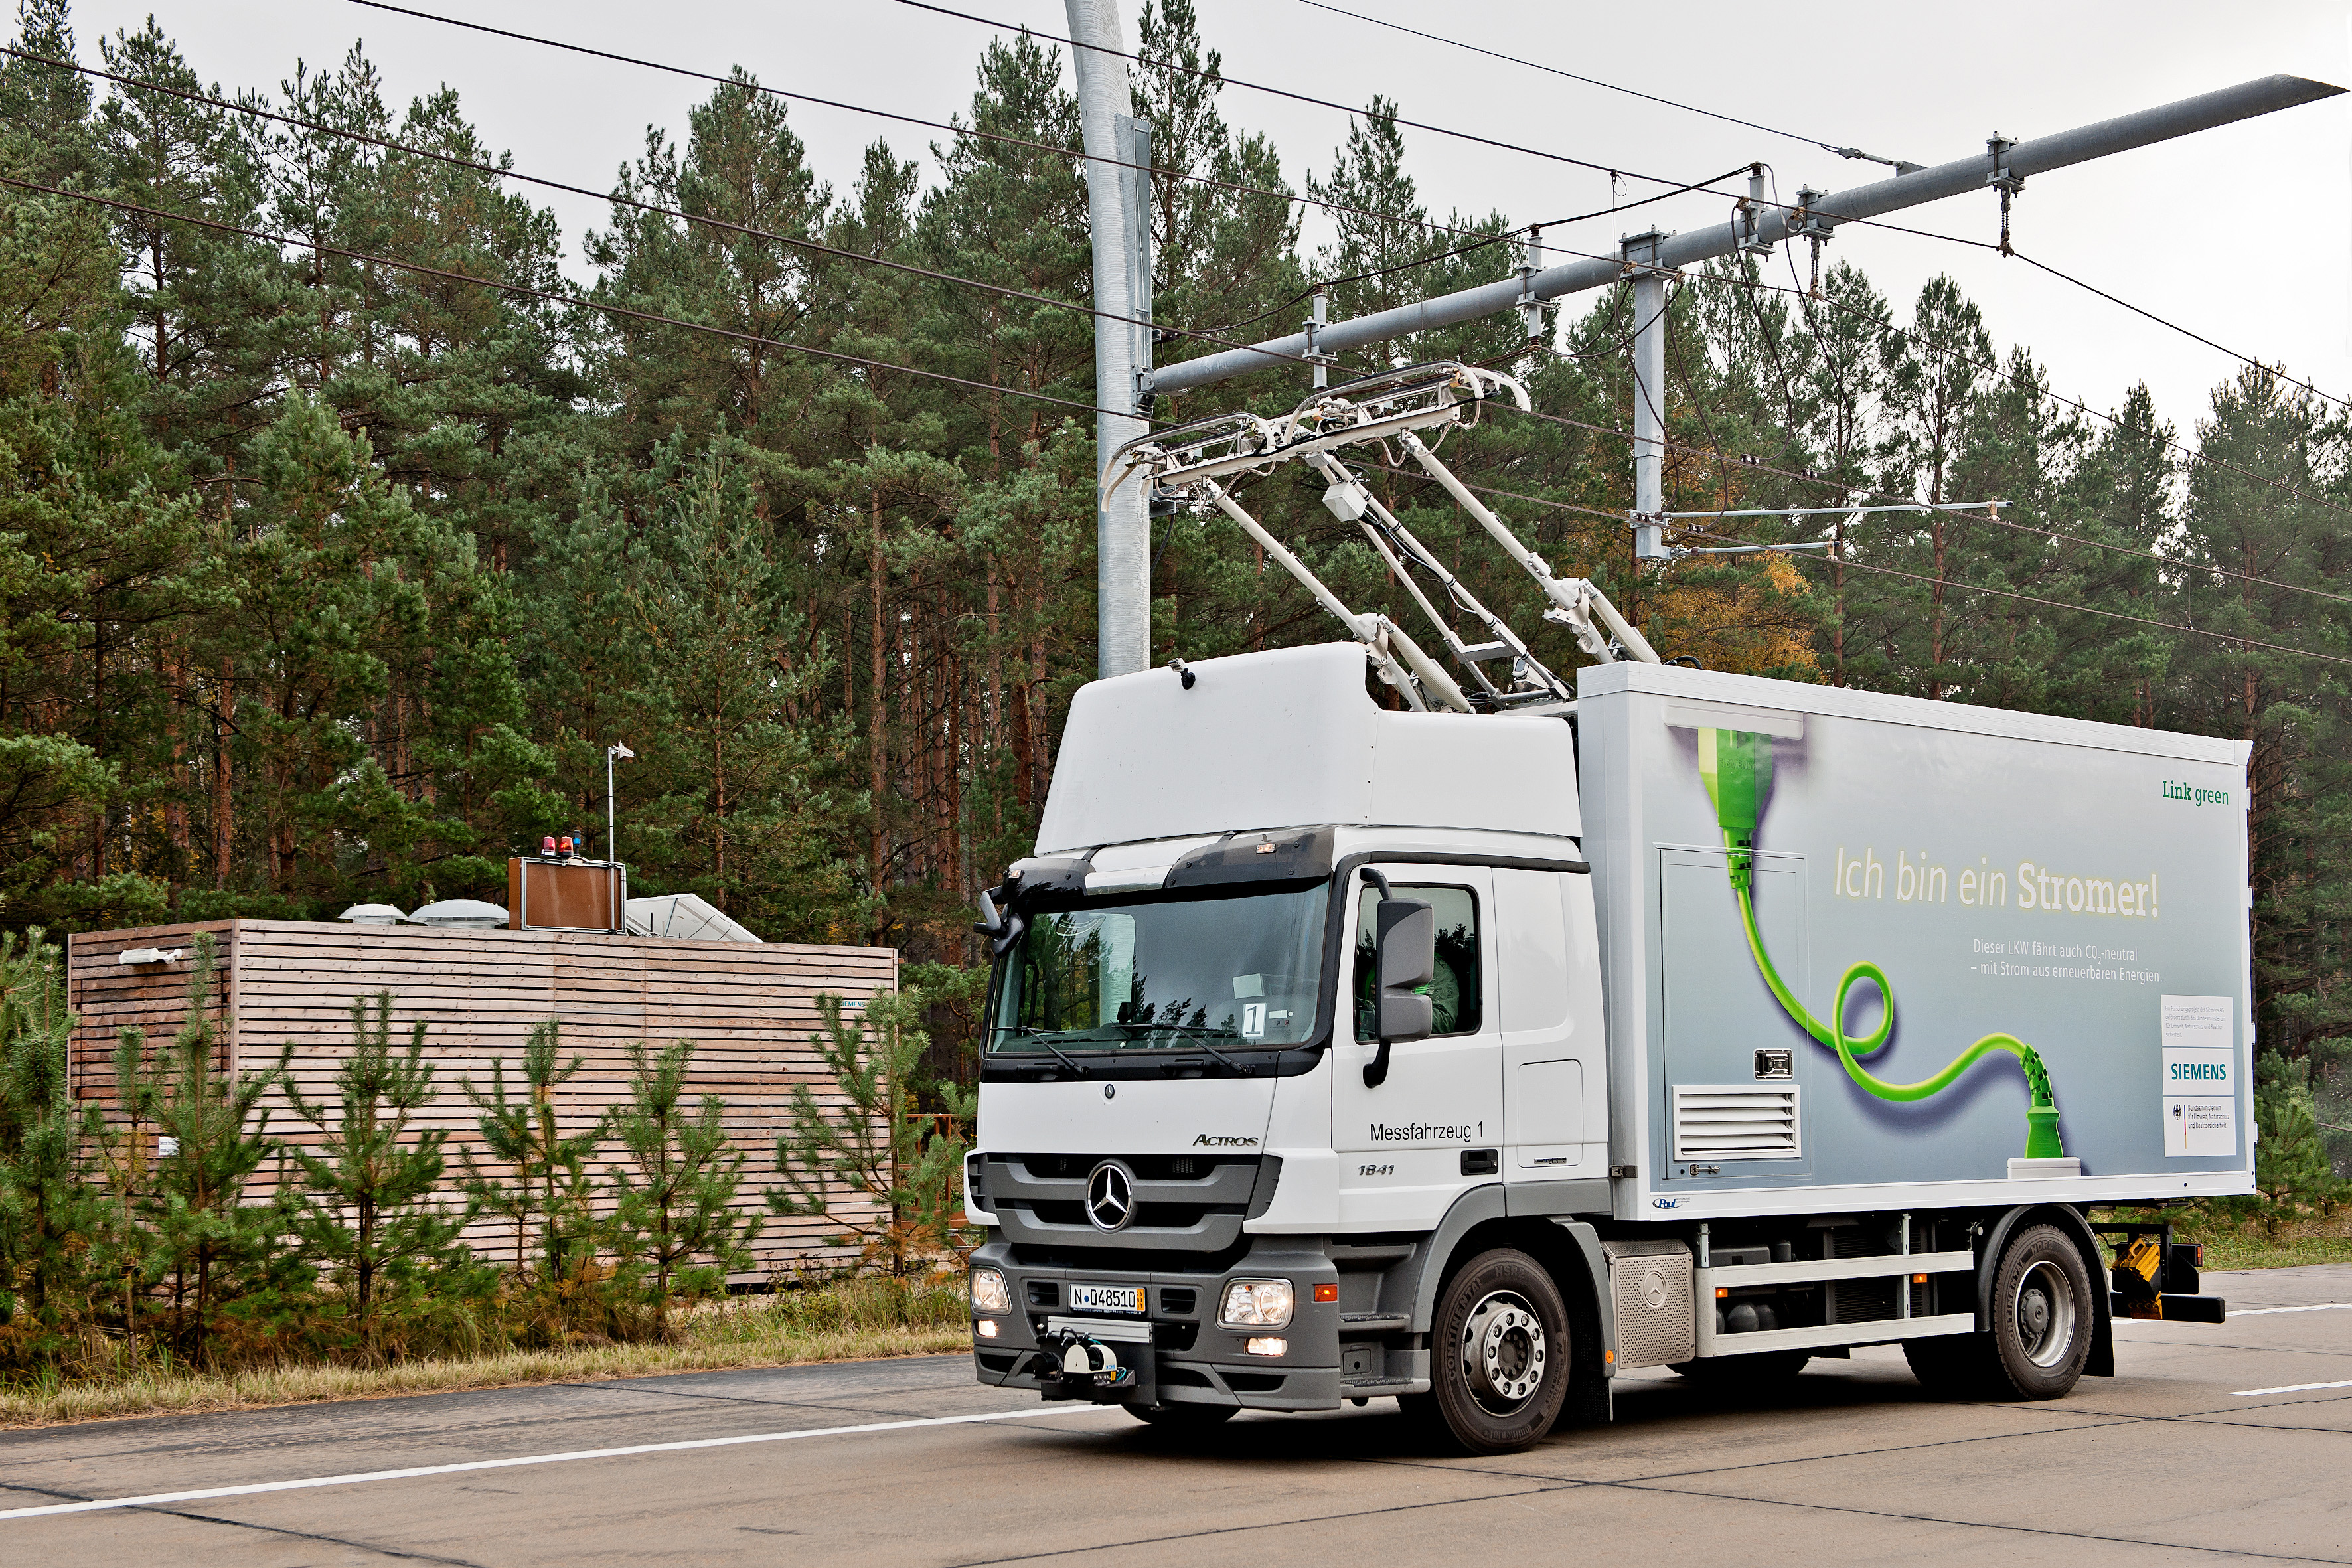 Electric Trolley Trucks may come soon to North American highways ...